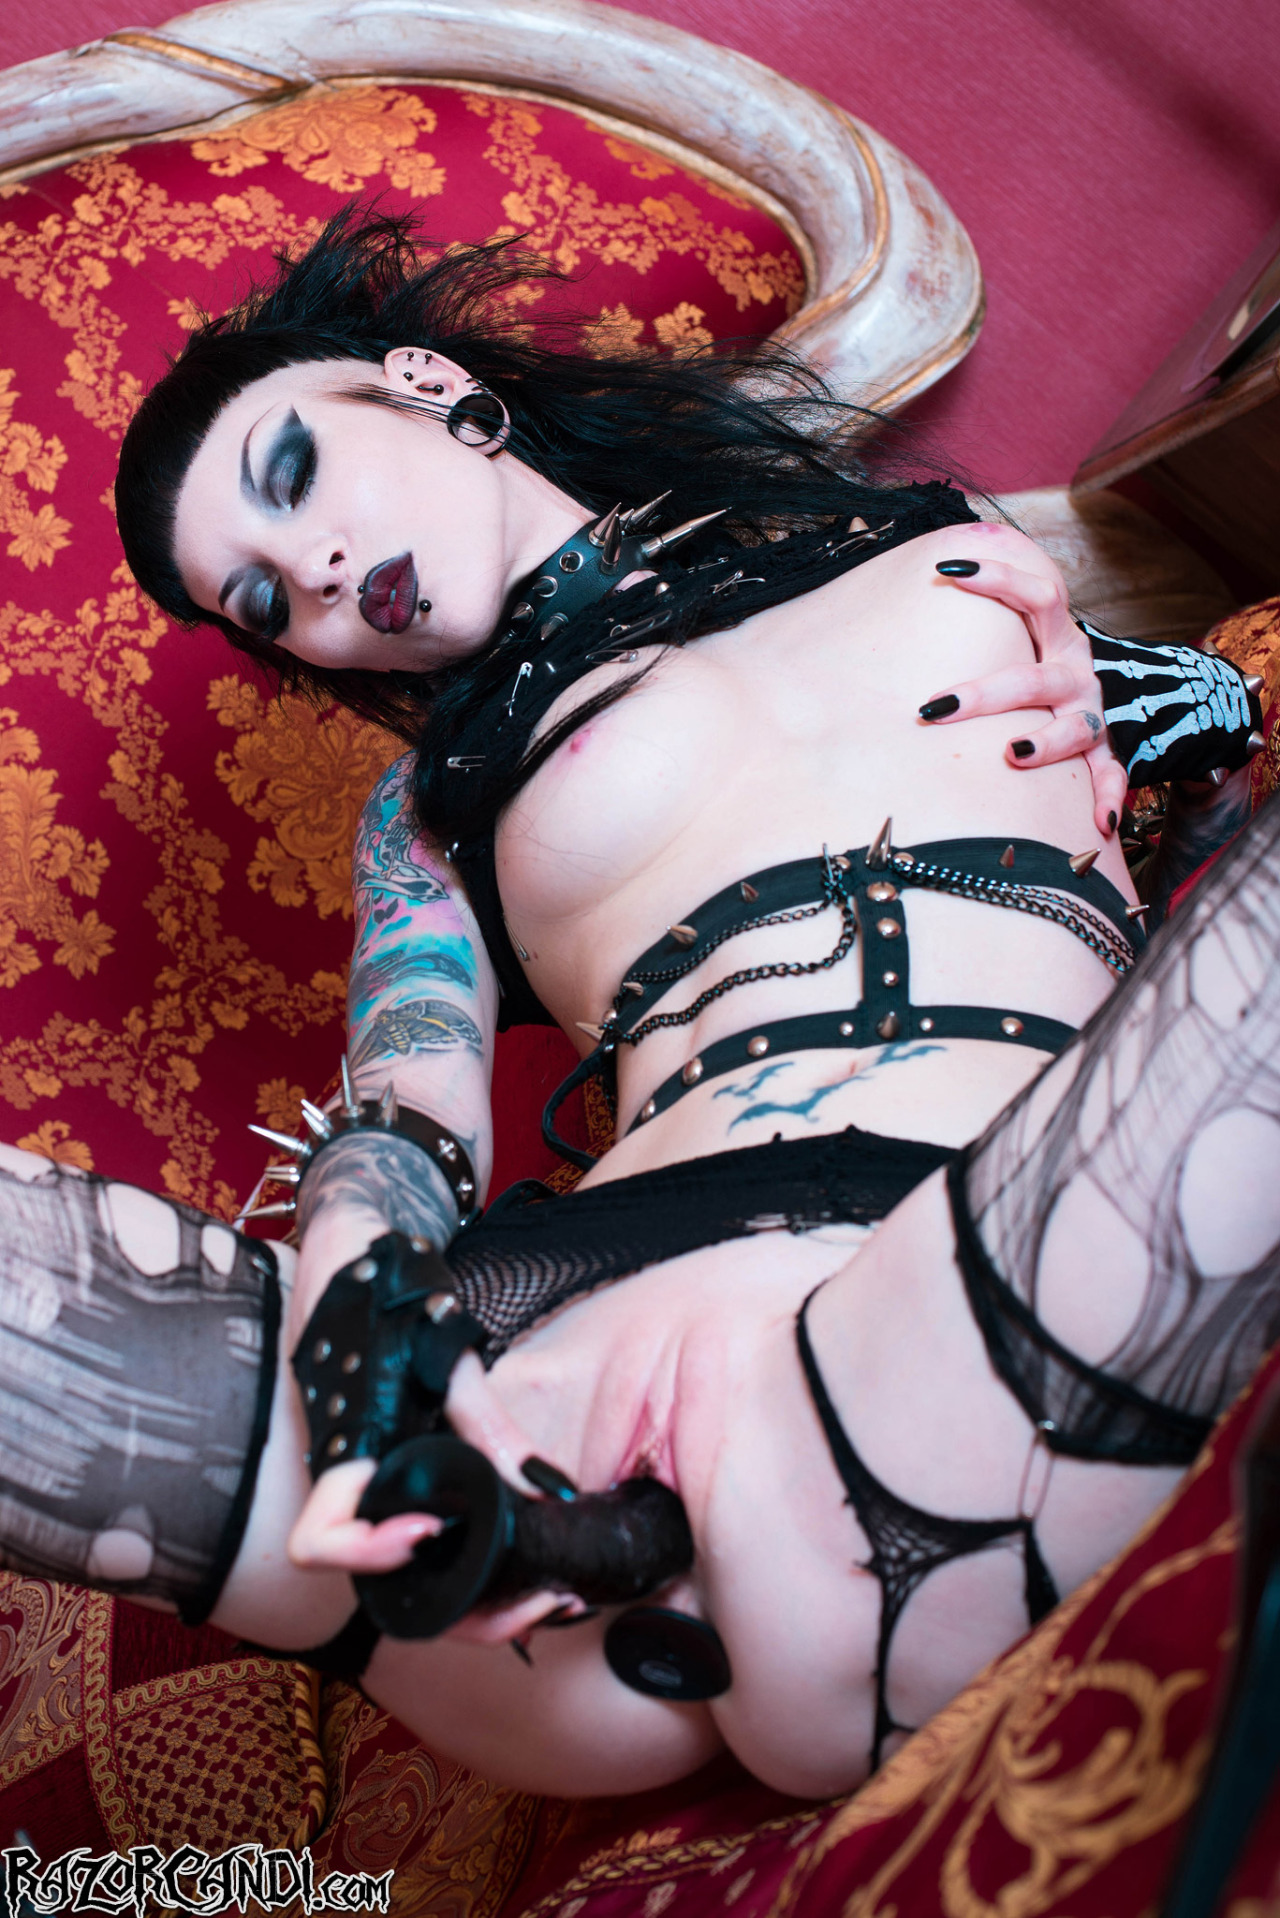 how to stream with open broadcaster software #deathrock #fishnet #heels #mohawk #mouthopen #pale #pierced #razorcandi #rippedfishnet #rippedstockings #spread #tattooed